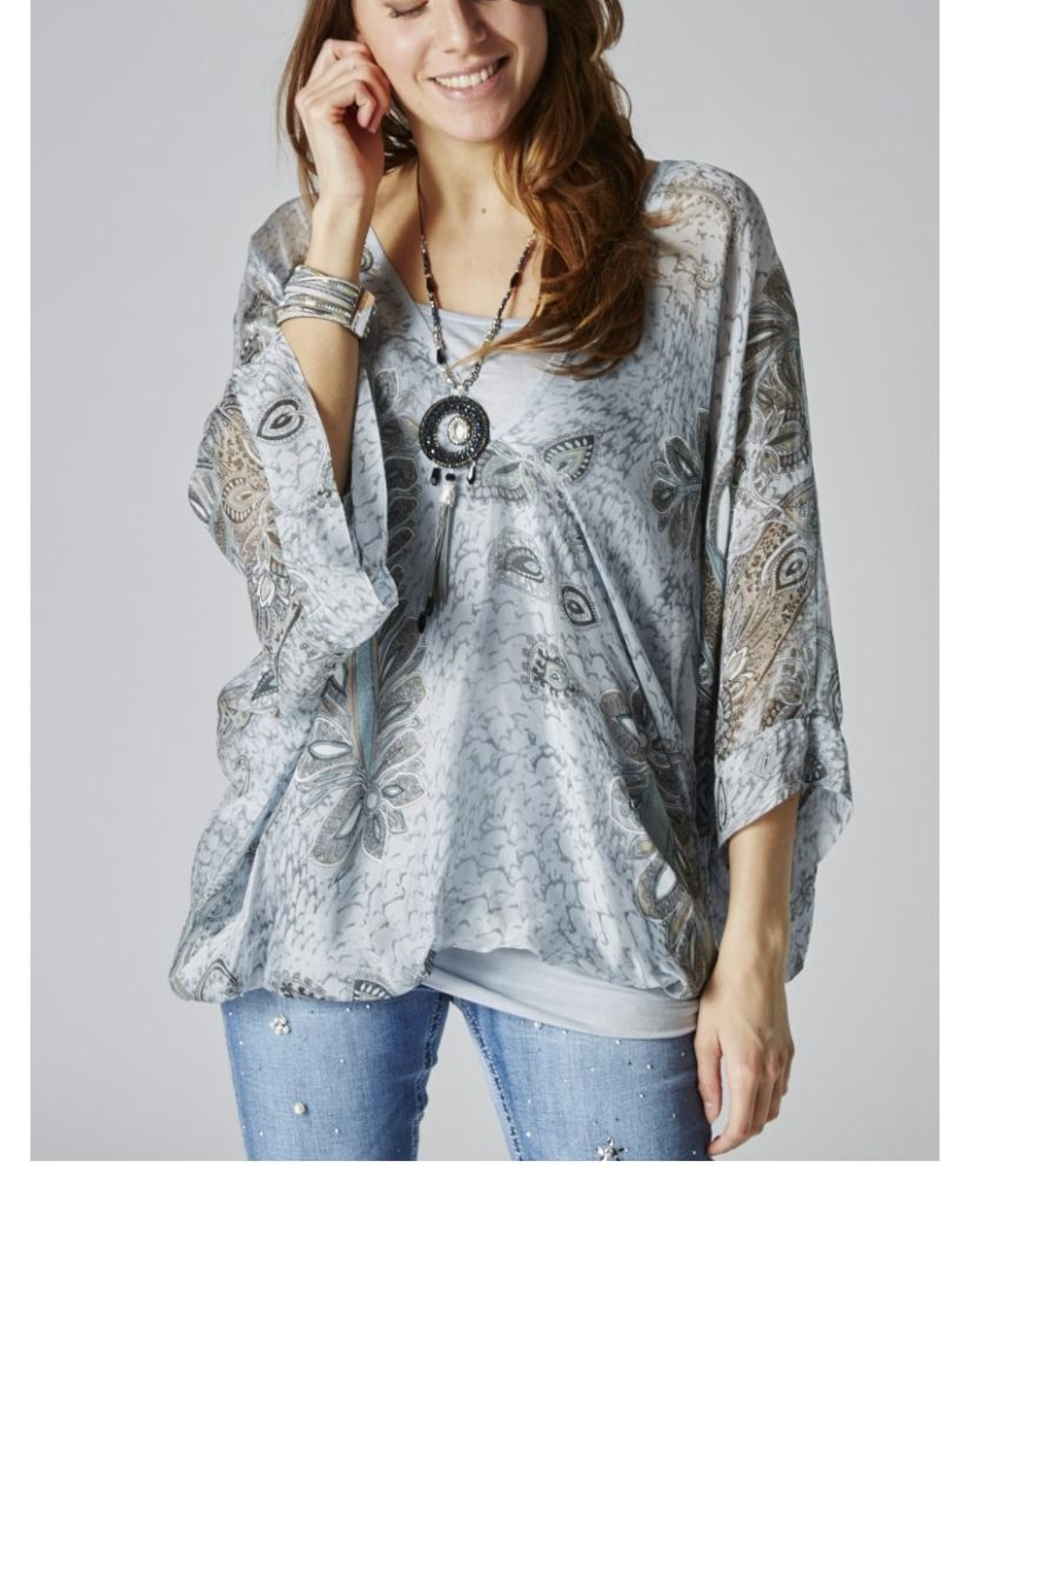 M made in Italy Printed Silk Top - Main Image